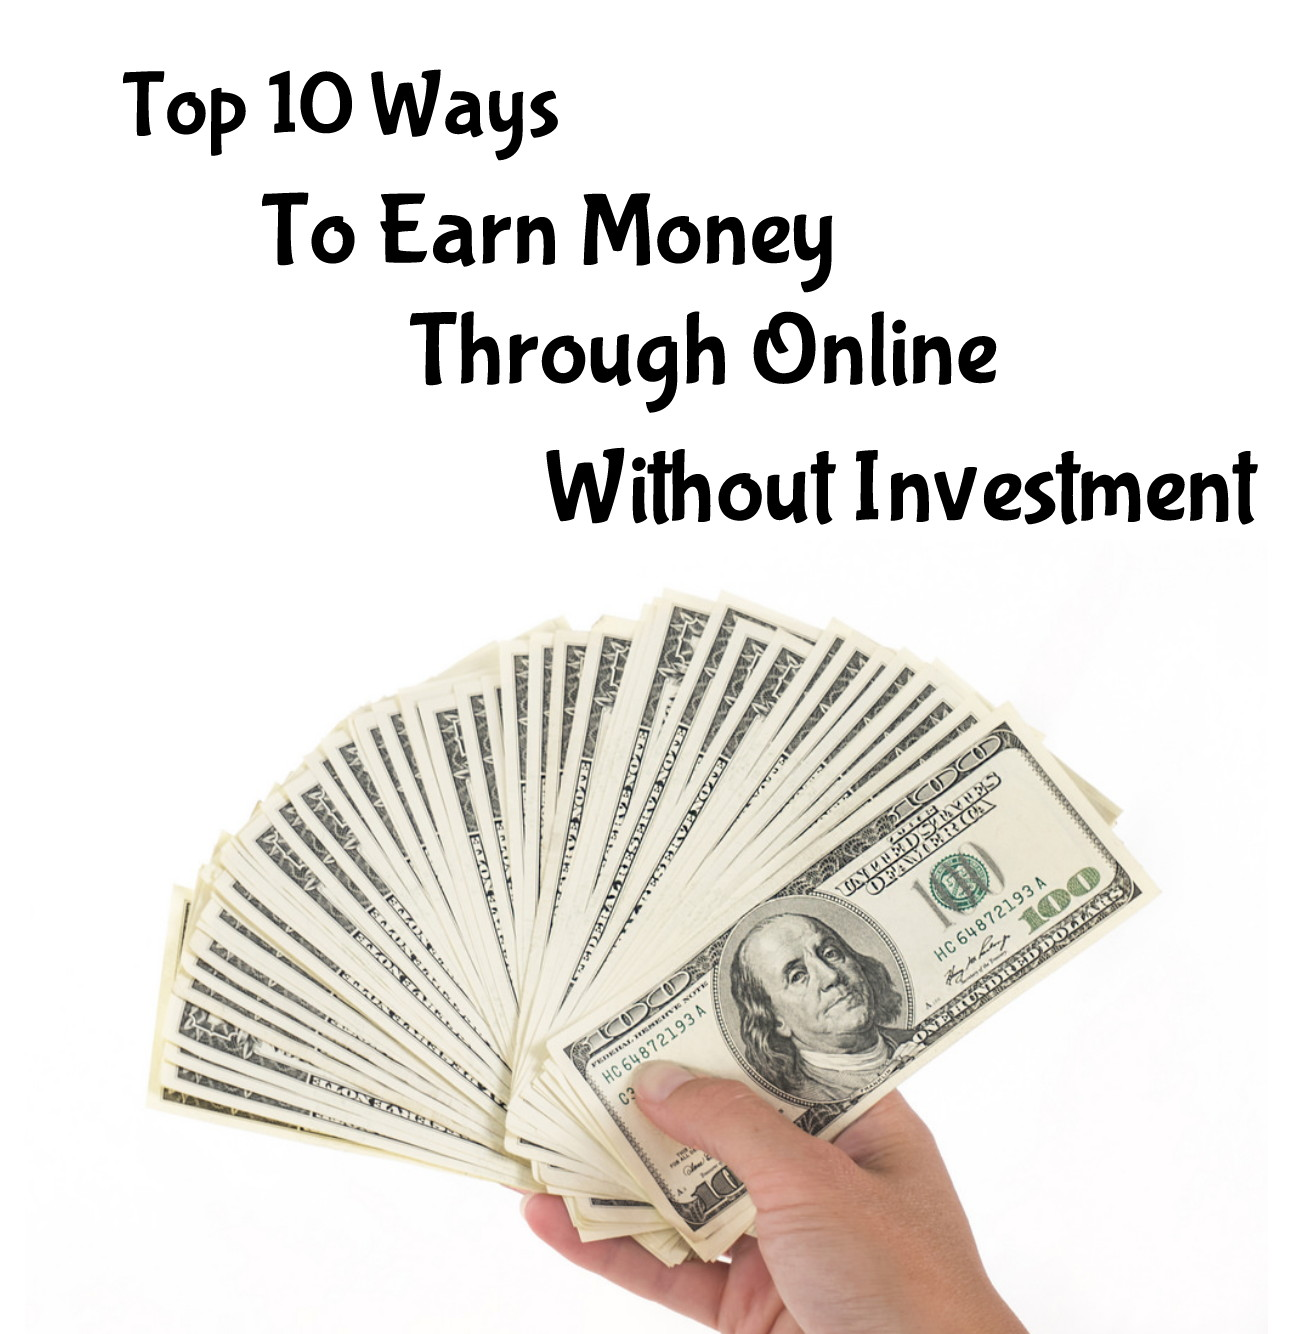 money is a best way to At mycurrencytransfercom, we compare the foreign exchange market to help you save on international money transfers click now for the cheapest quotes.